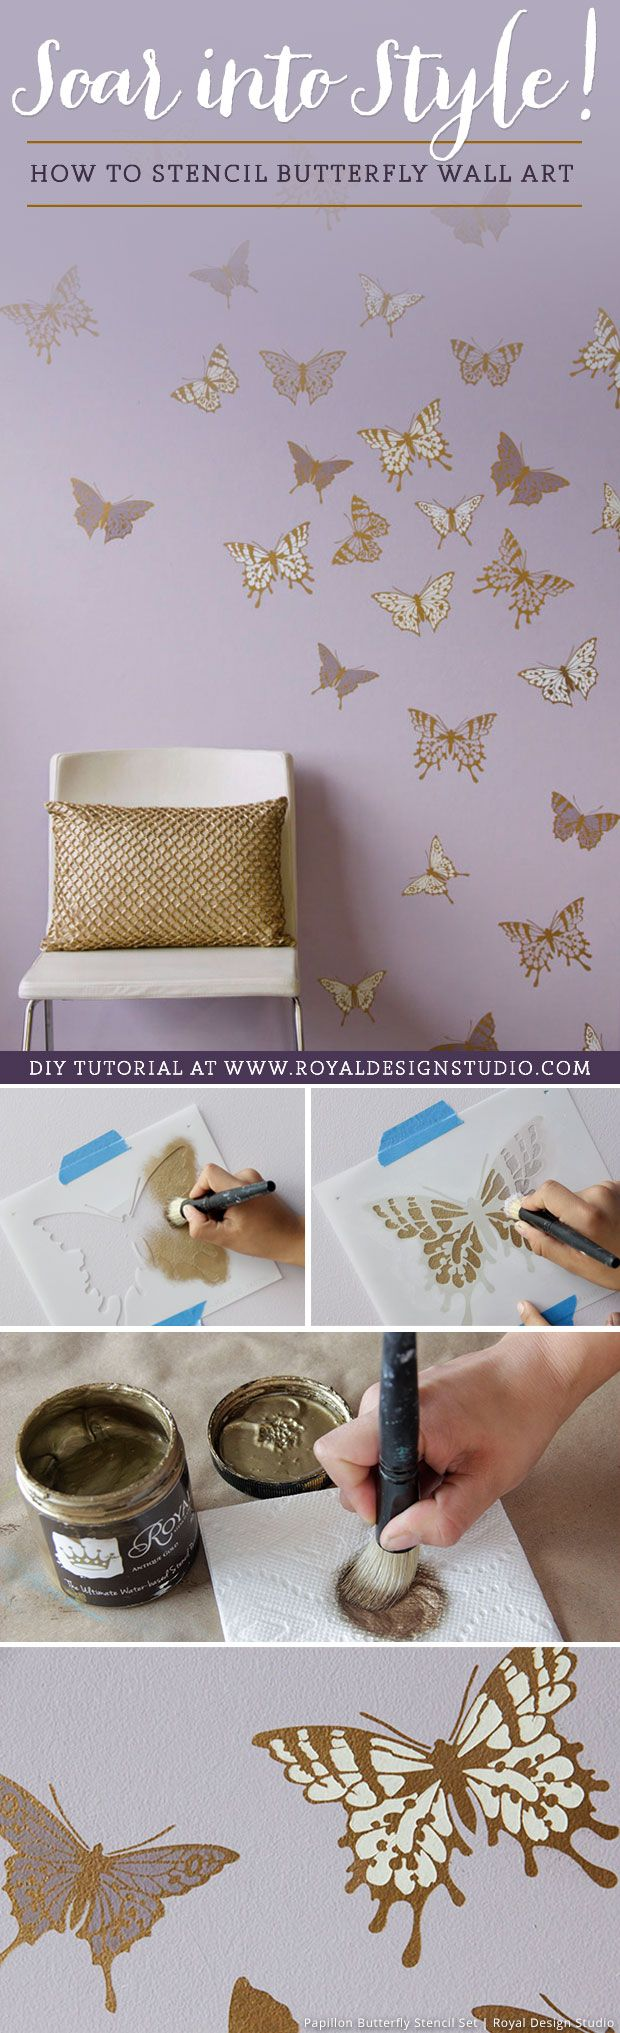 25 unique butterfly stencil ideas on pinterest felt butterfly how to stencil tutorial butterfly wall art for cute girls room decor amipublicfo Image collections